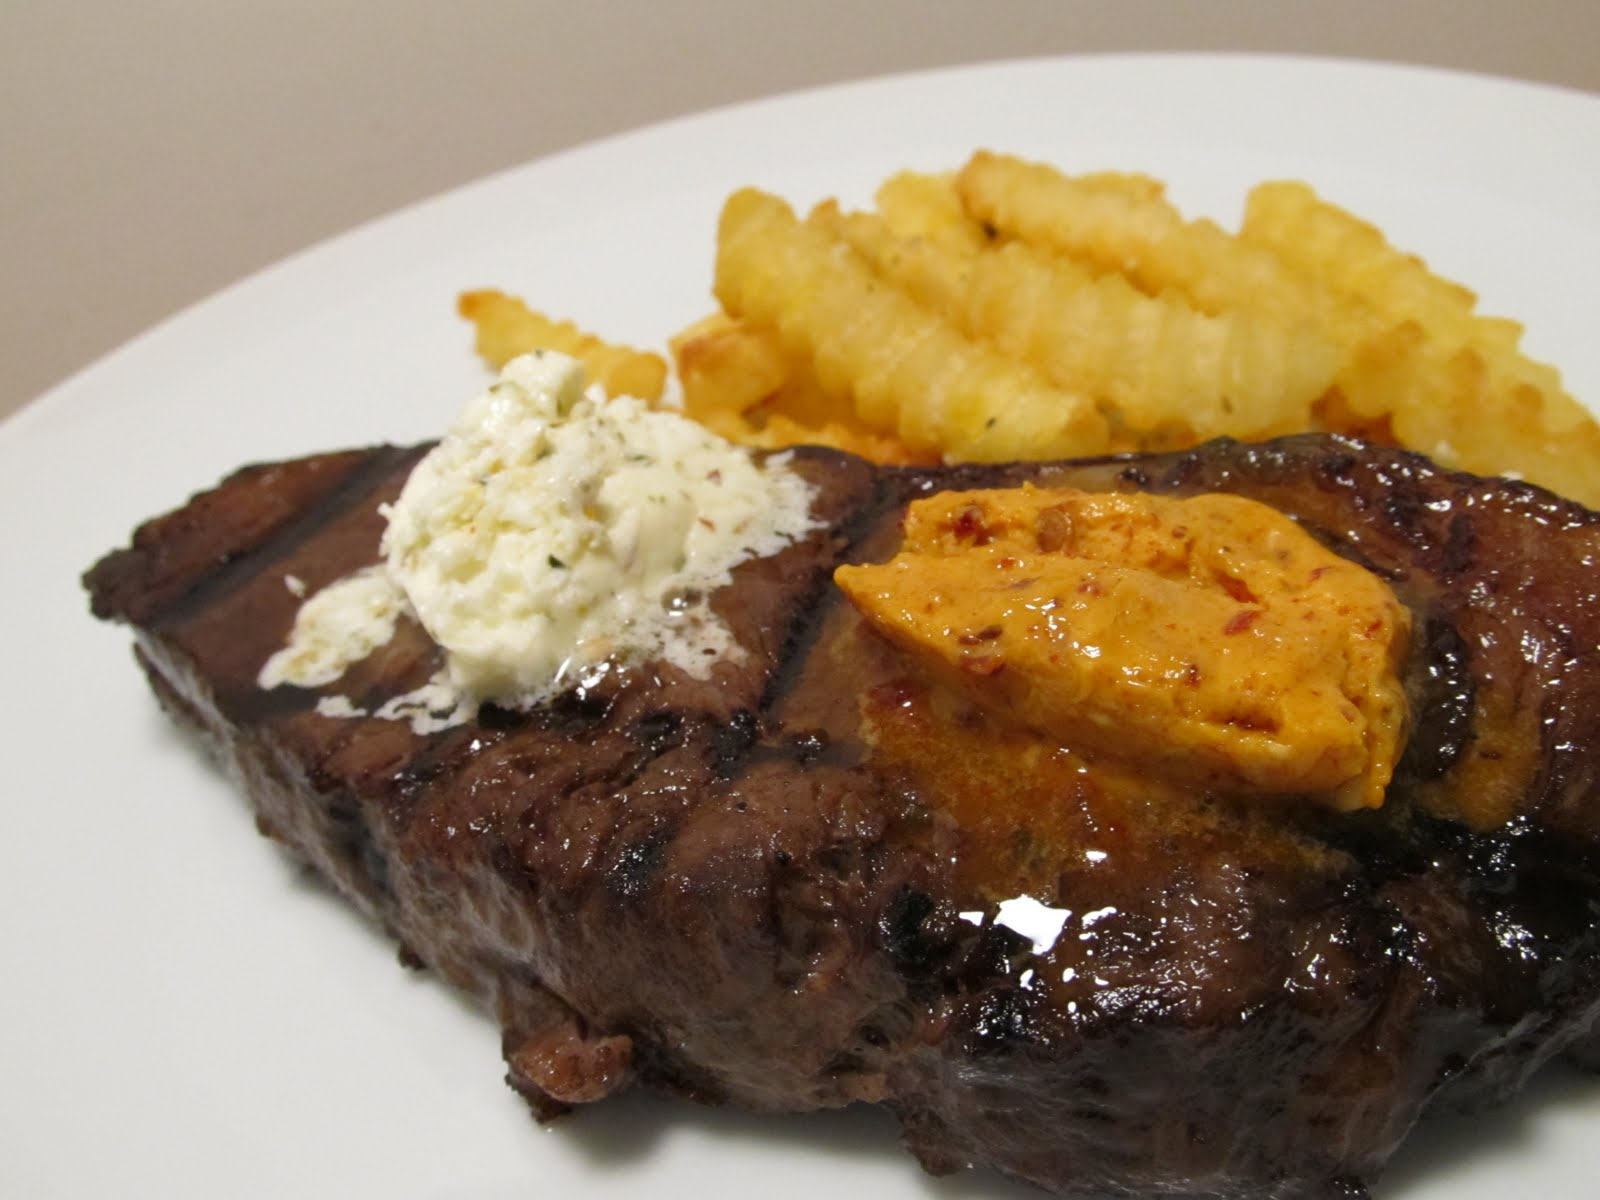 Jenn's Food Journey: Grilled Steaks with Chipotle Butter ...